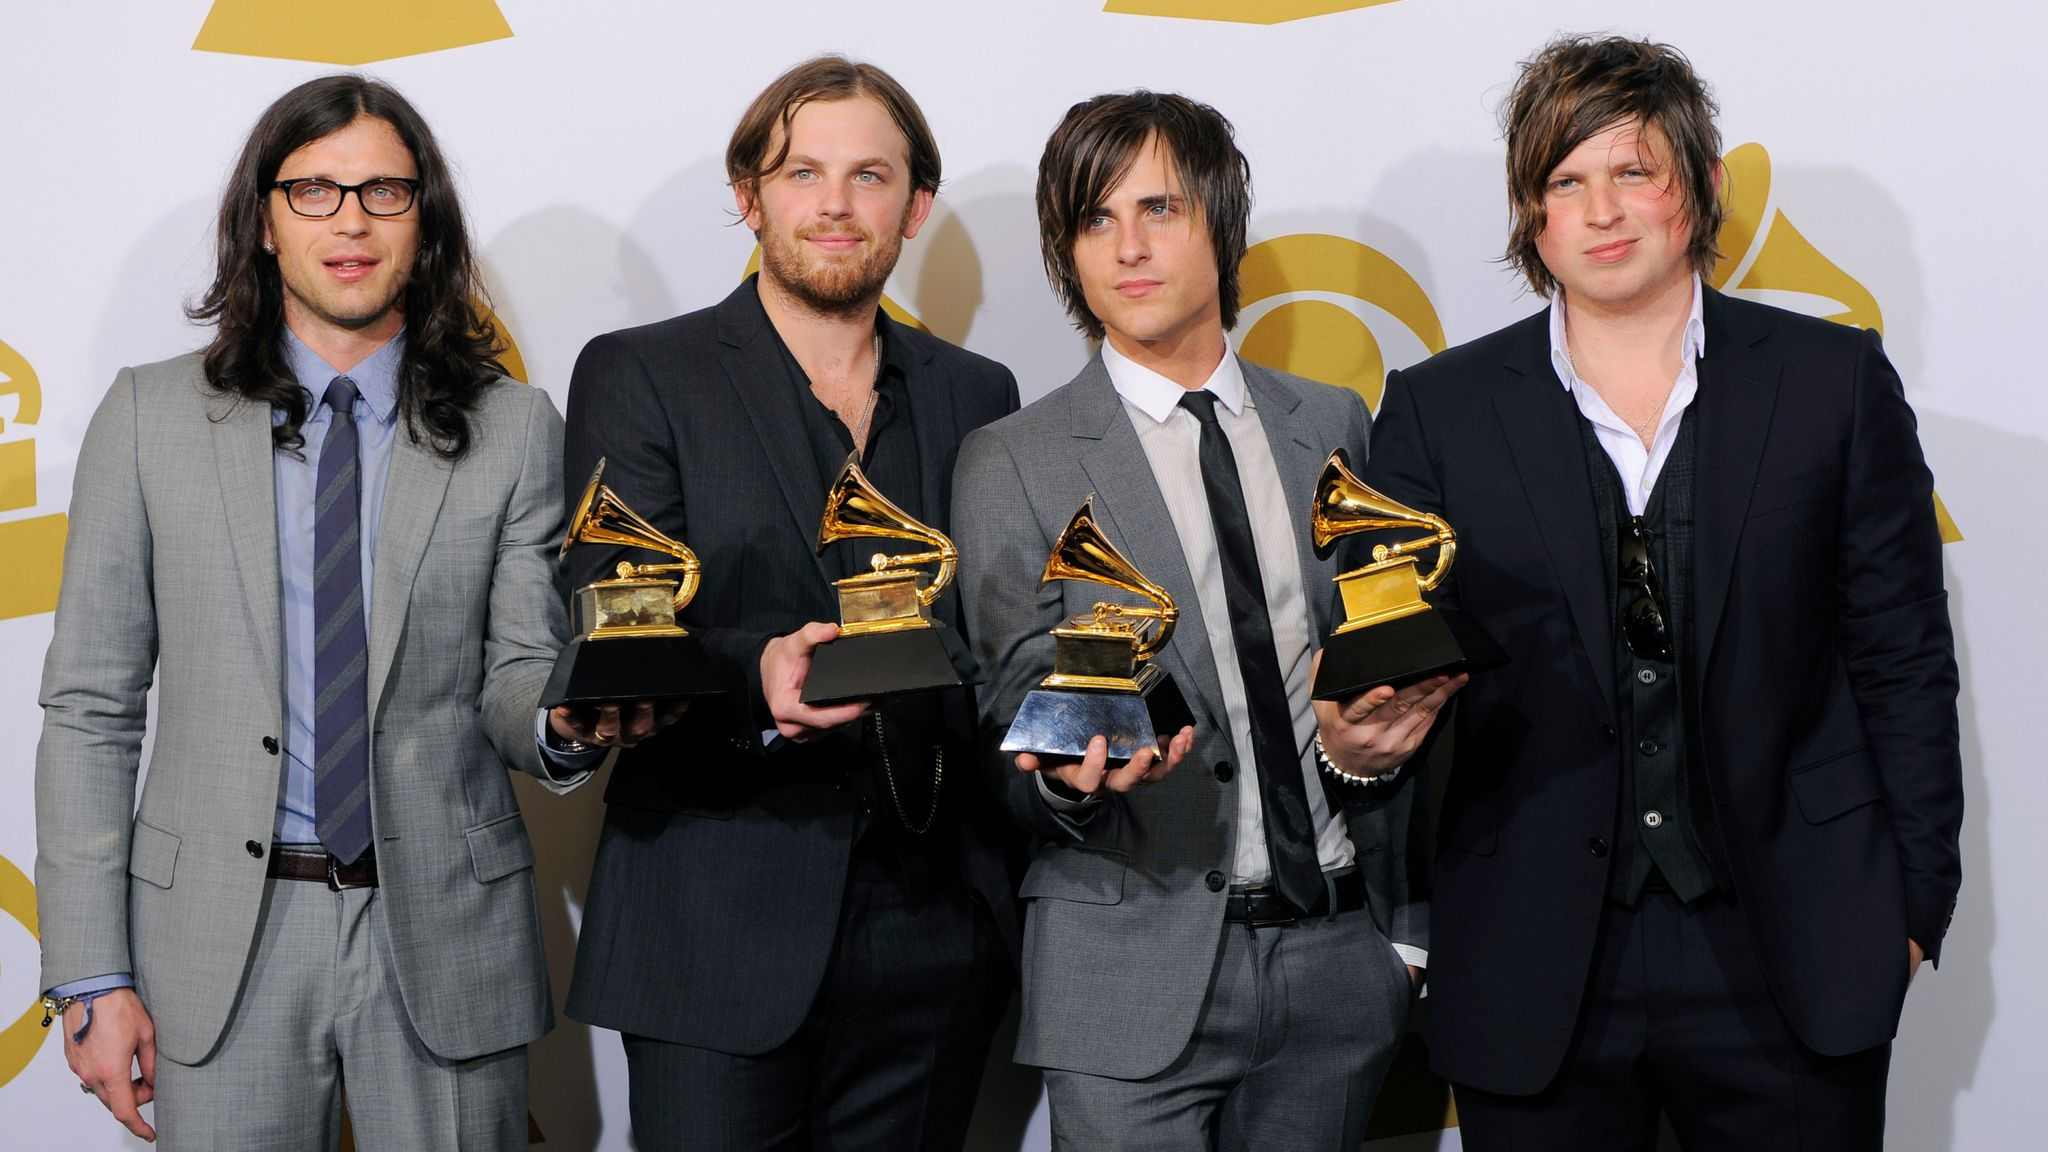 The Kings of Leon win record of the year for Use Somebody at the Grammys in 2010. Pic: AP